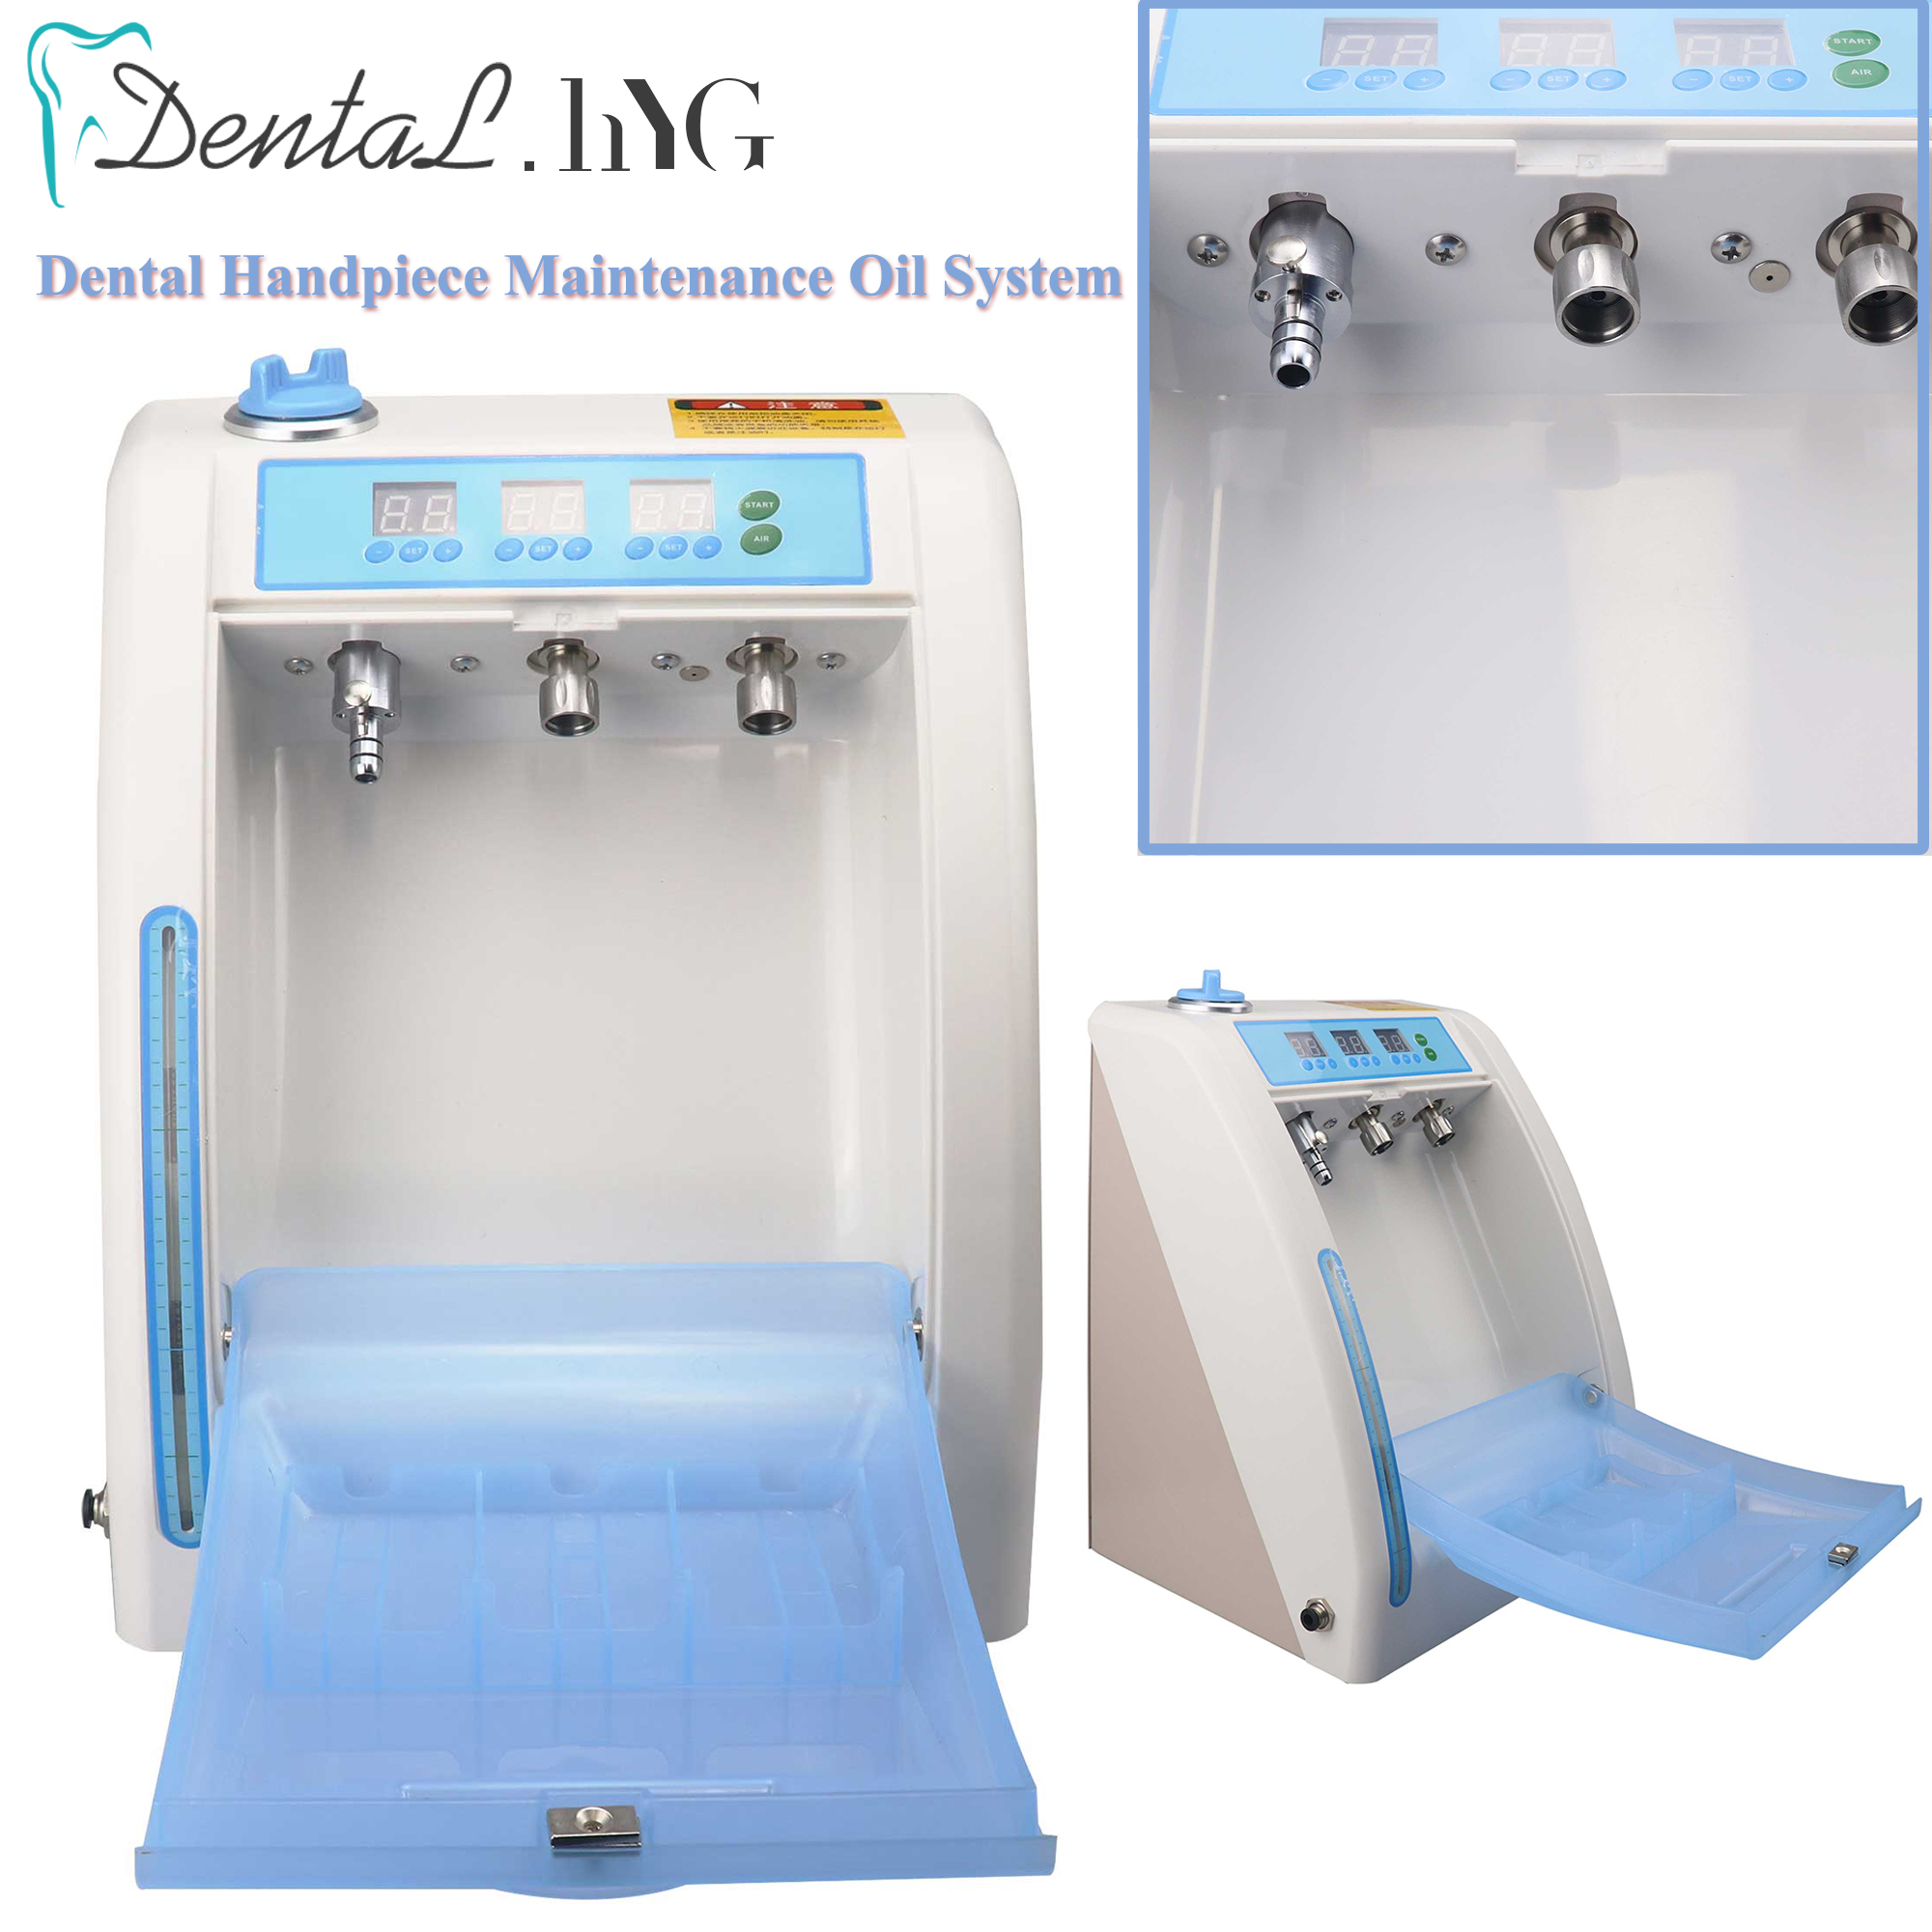 Dental Handpiece Maintenance Oil System 3 Handpiece Ports Connector Spray Cleaning Lubricating Device Oil Lubrication Machine